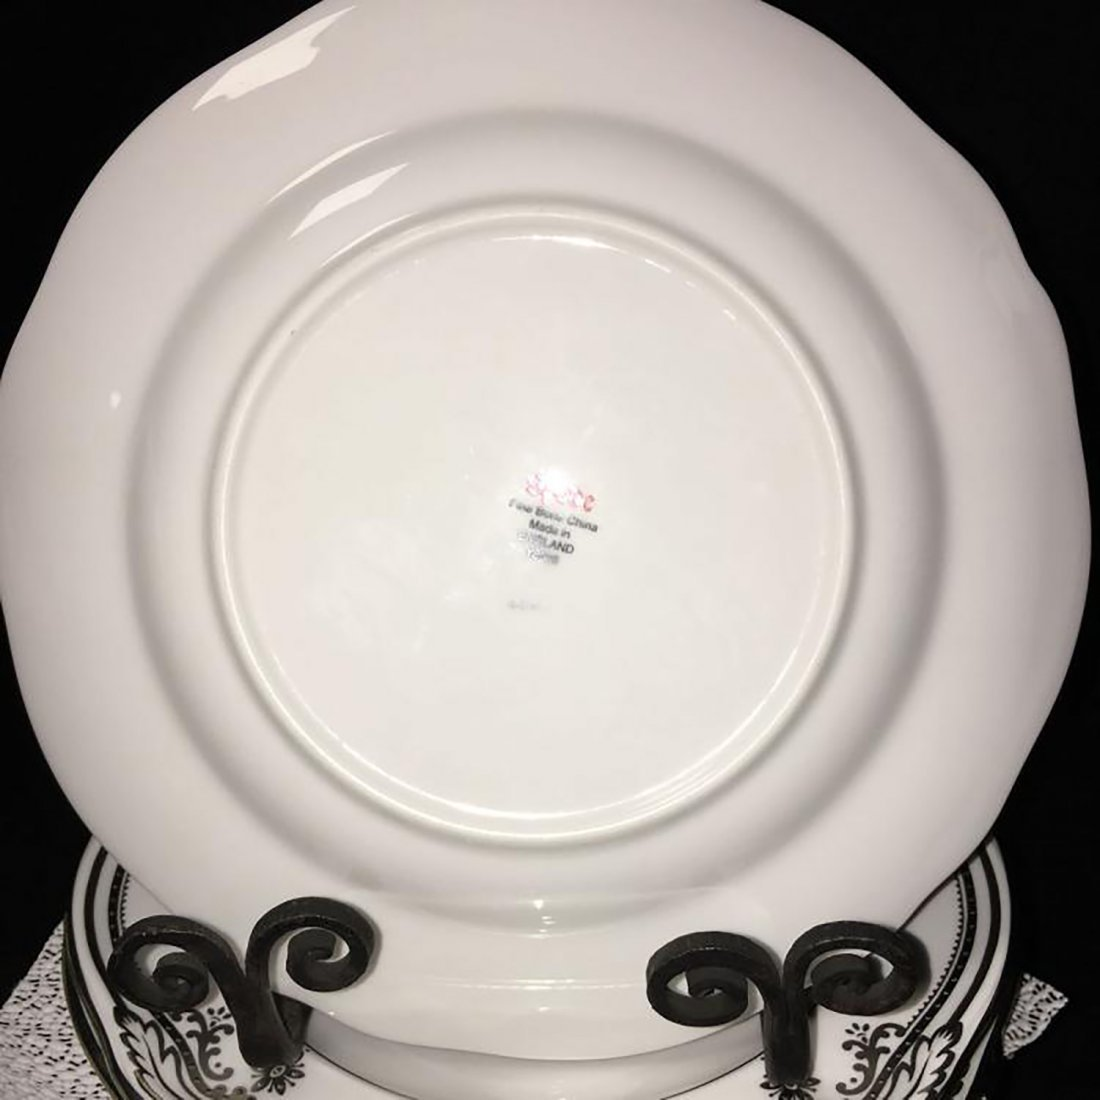 Spode Bone China Dinnerware Stafford Platinum Pattern - 8